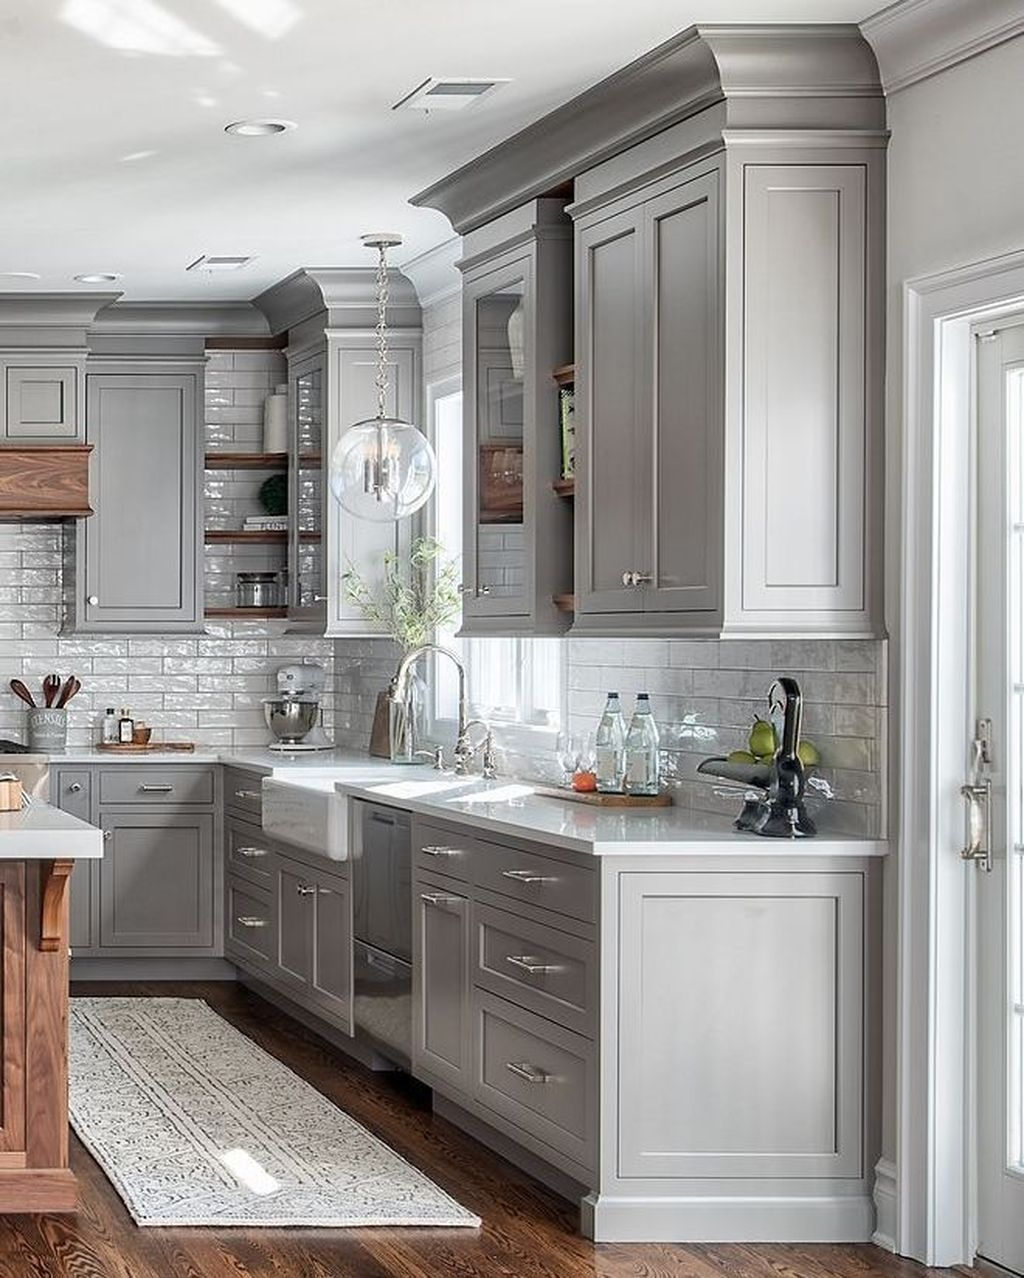 48 Best Ideas For Kitchen Color Design in 2020